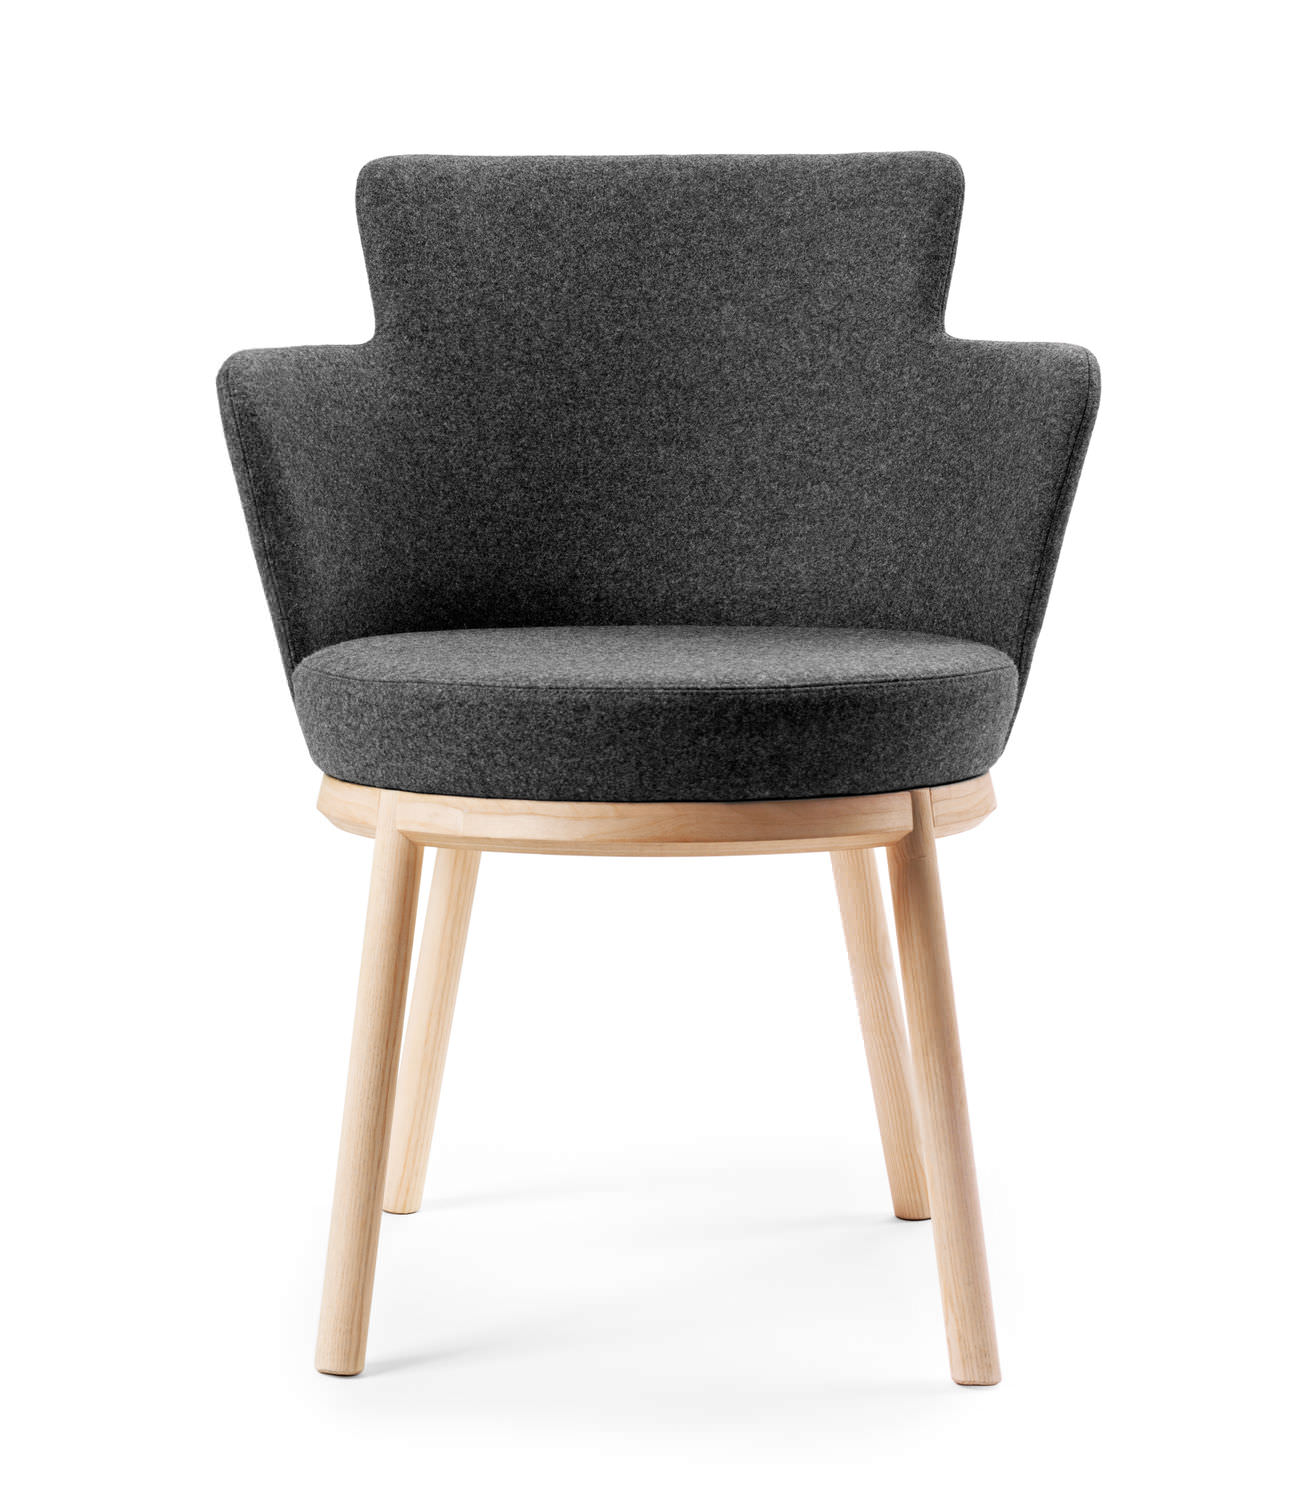 contemporary chair  fabric  with armrests  upholstered  zen  - contemporary chair  fabric  with armrests  upholstered  zen conferenceiii by Åke axelsson